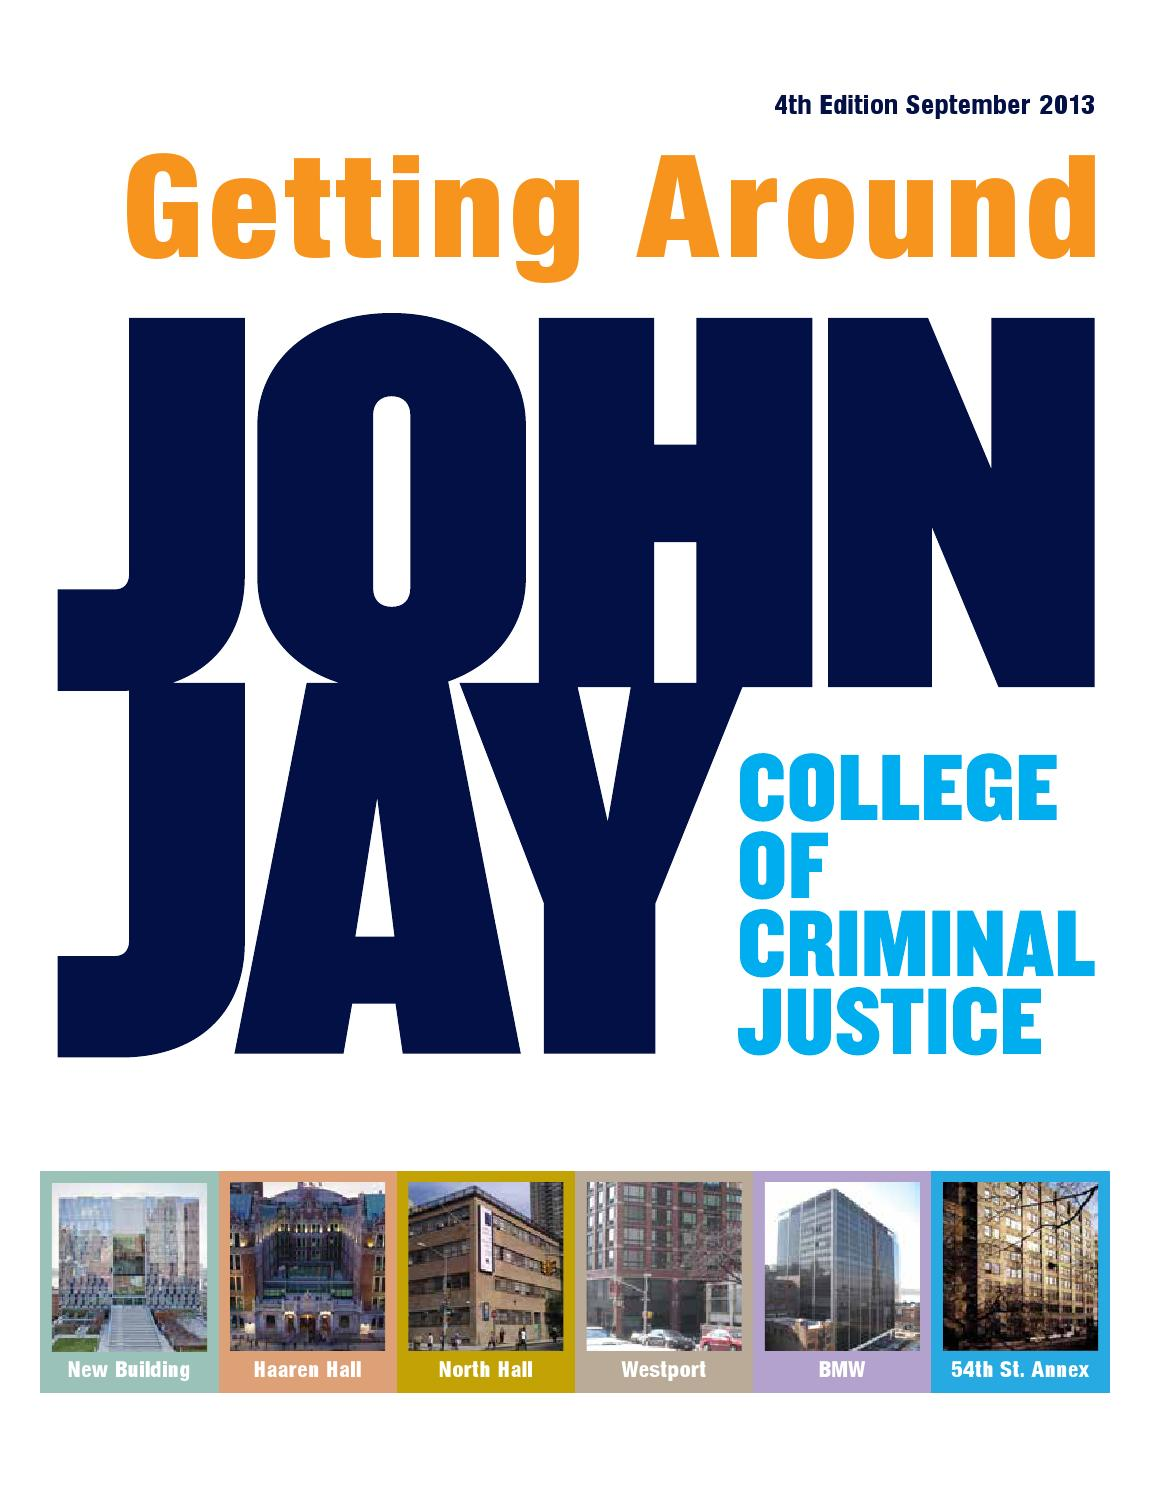 john jay campus map John Jay College Campus Map By Jjcstudents Issuu john jay campus map